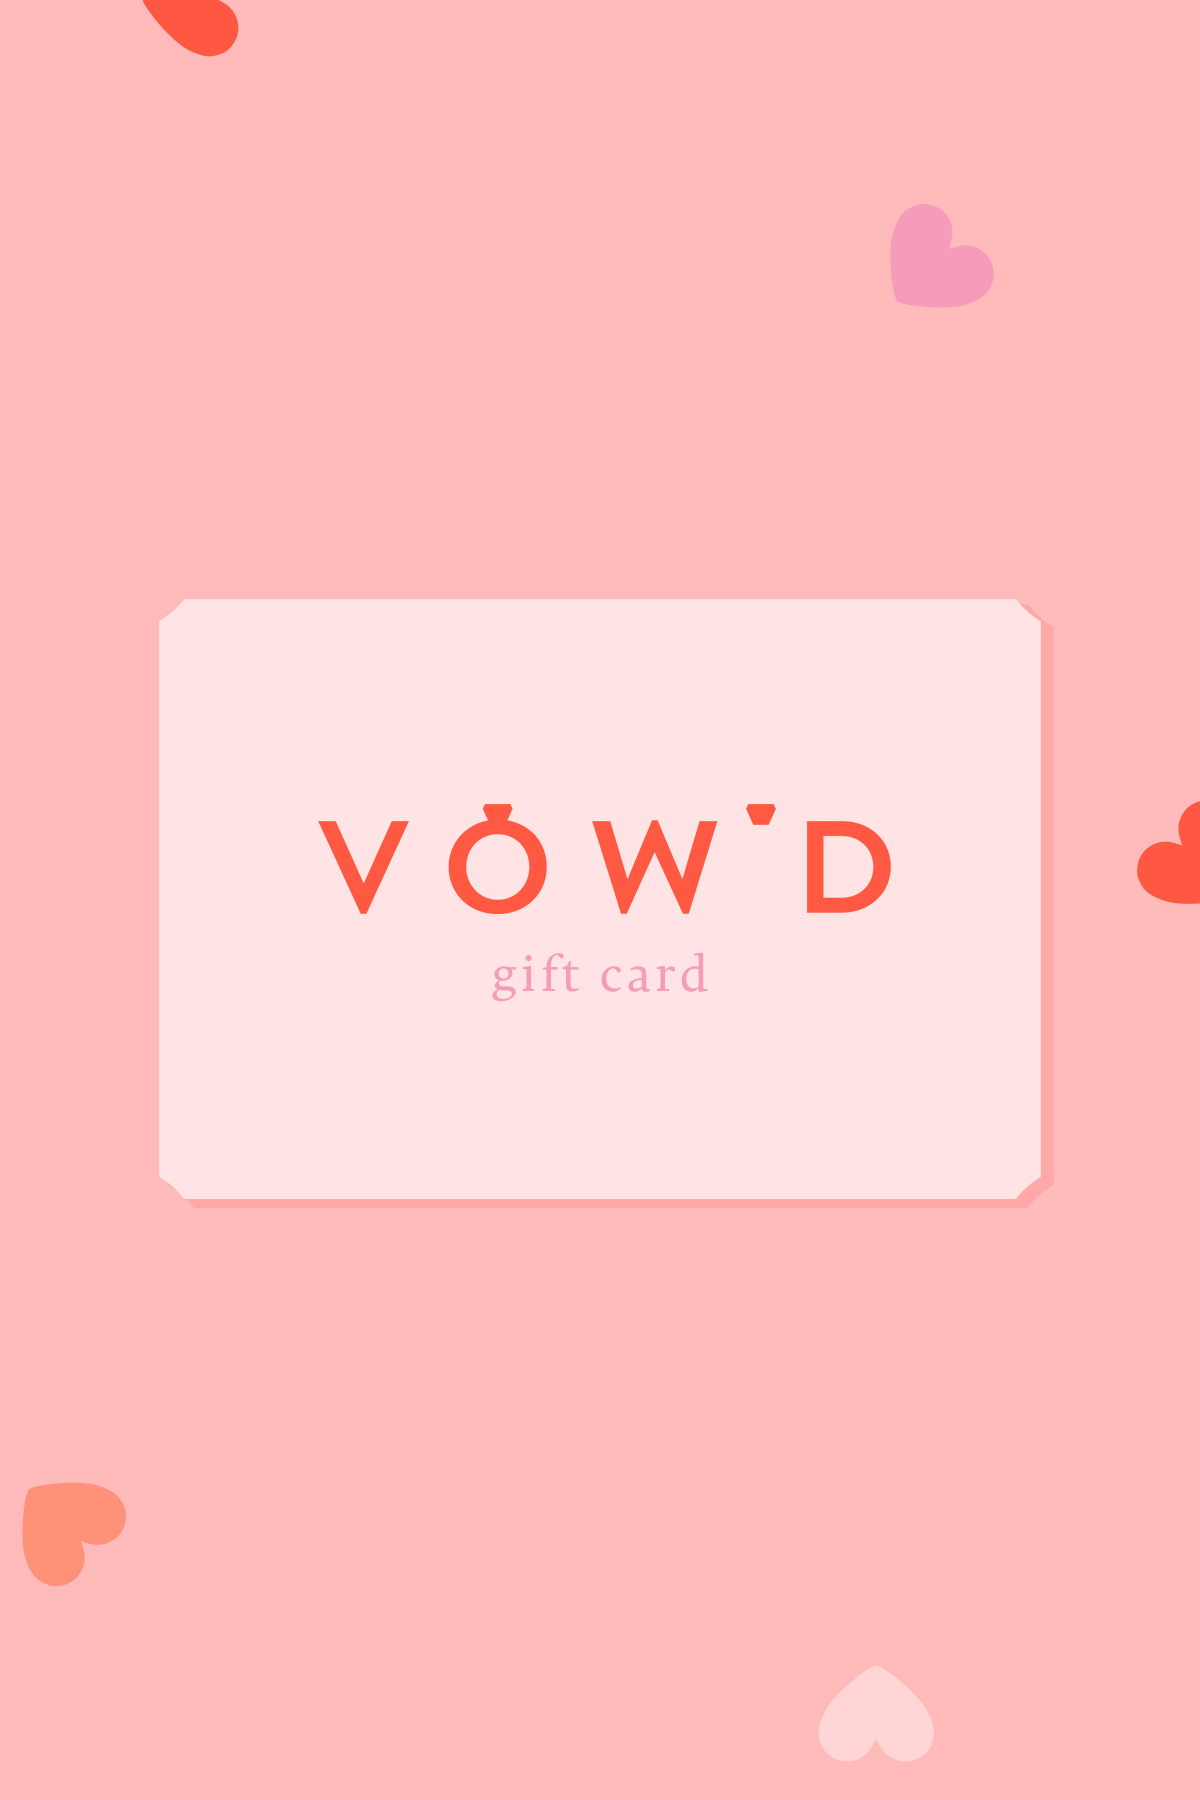 Vow'd Gift Card